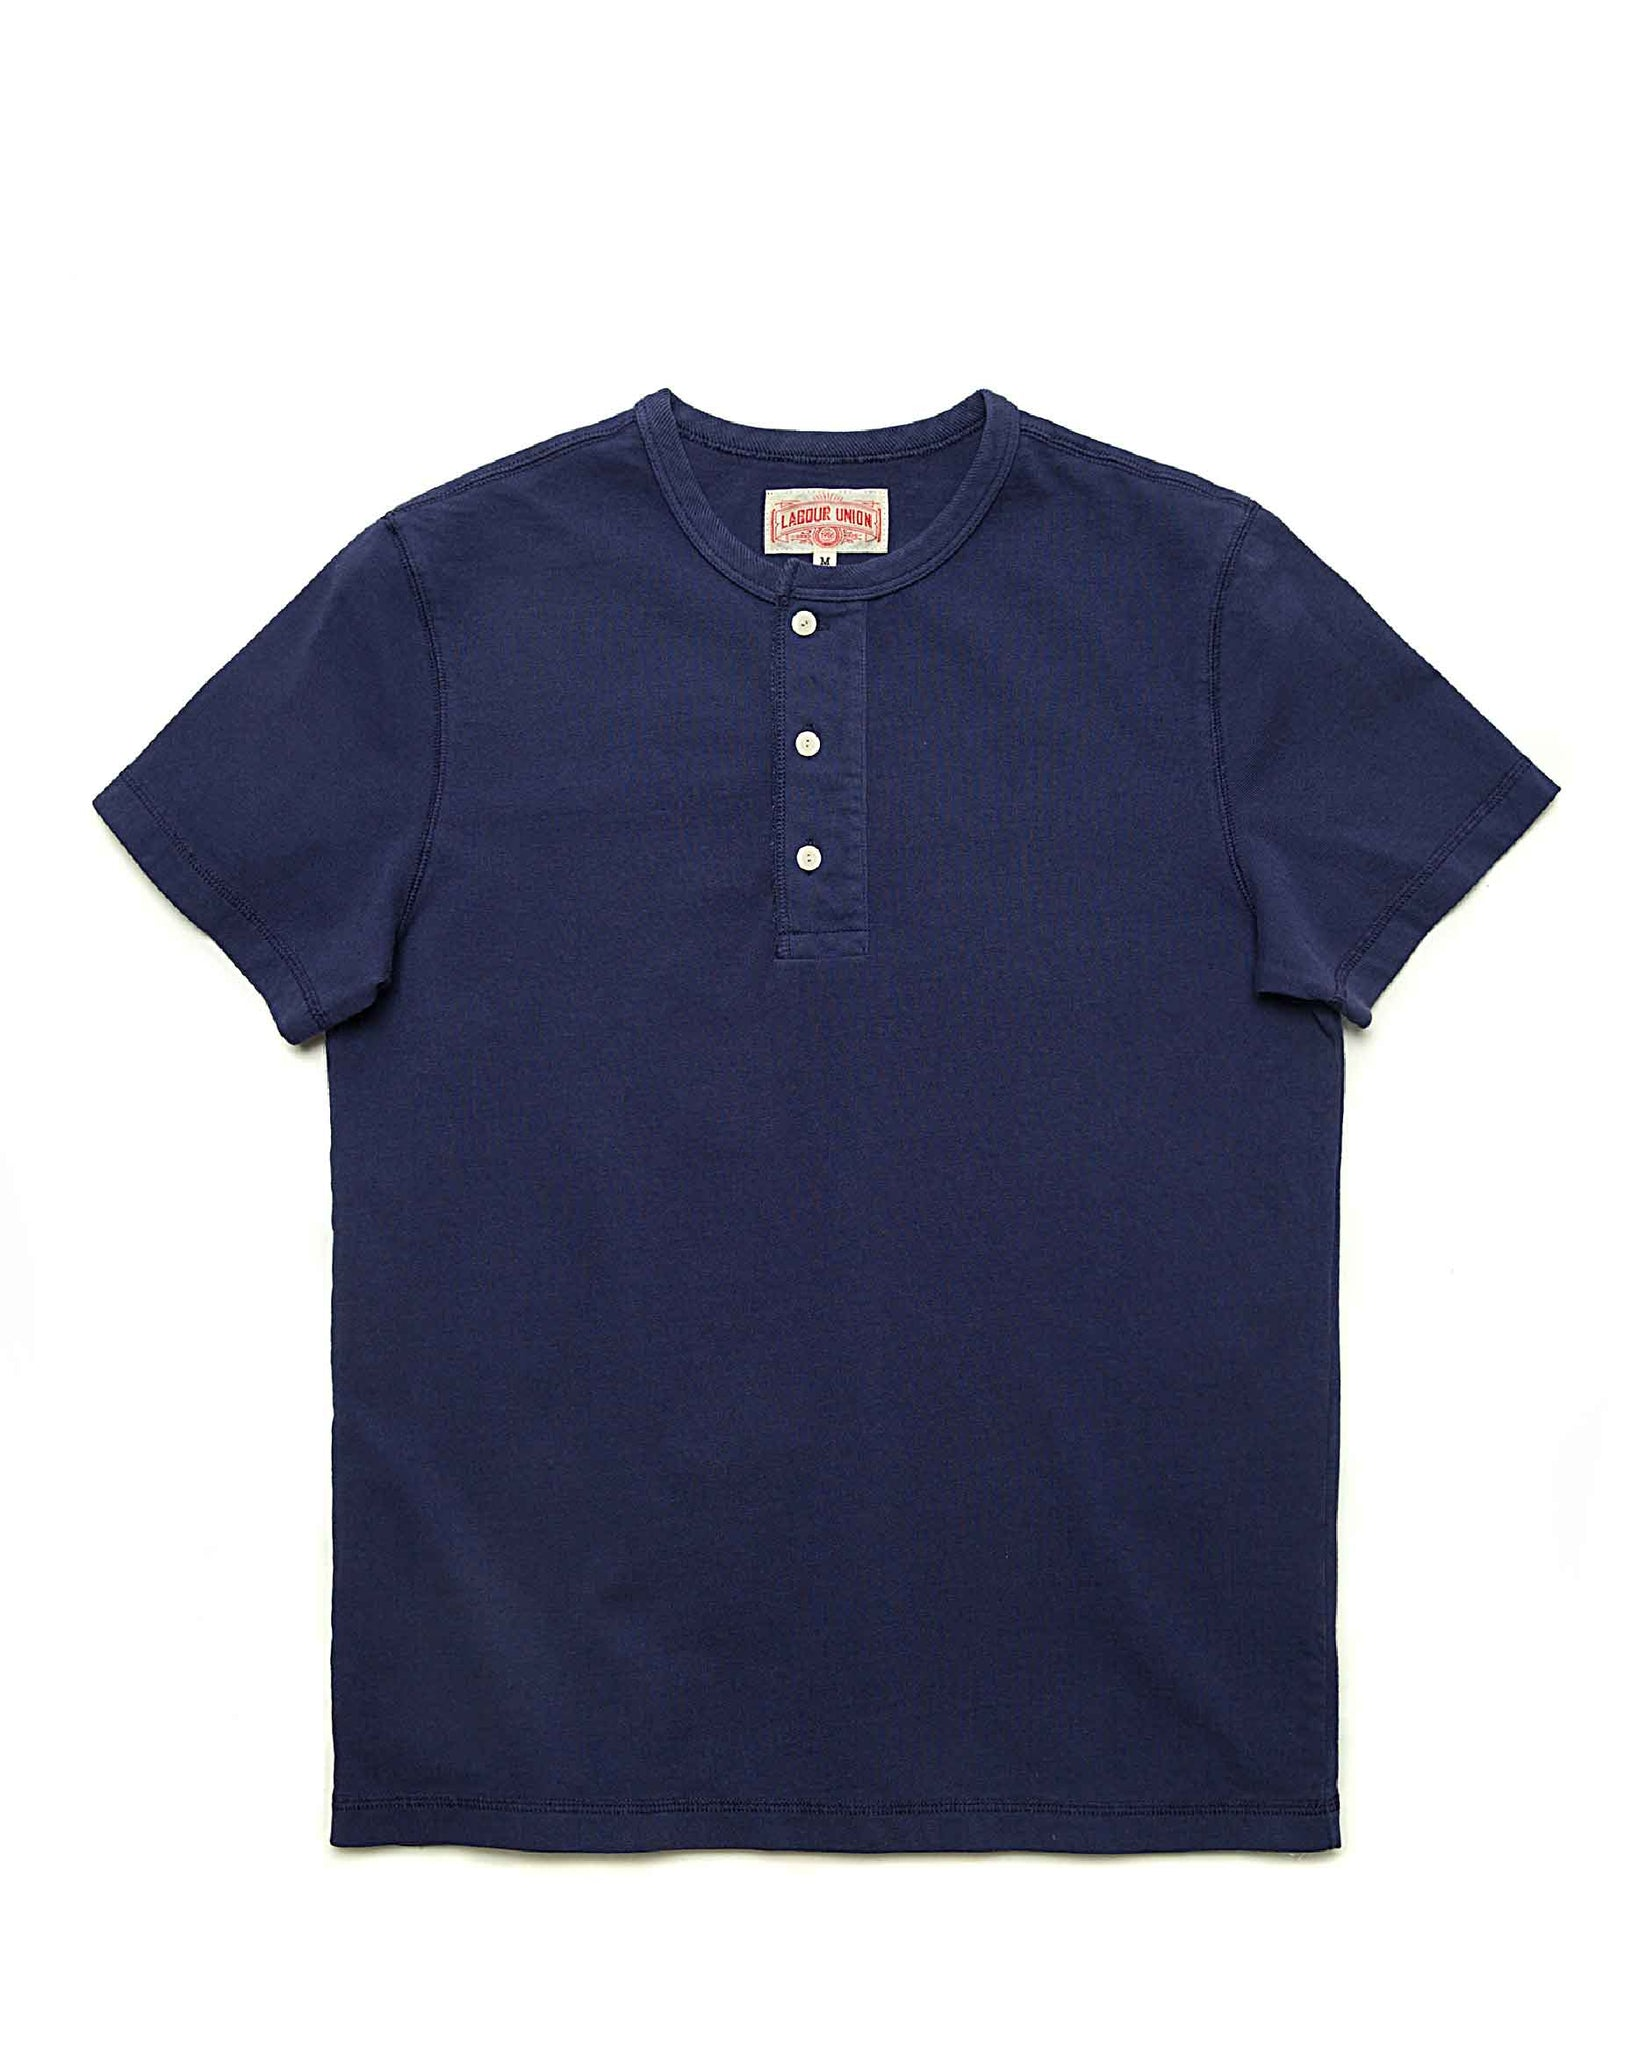 LabourUnion-clothing-american-retro-vintage-handmade-henley-tee-navy